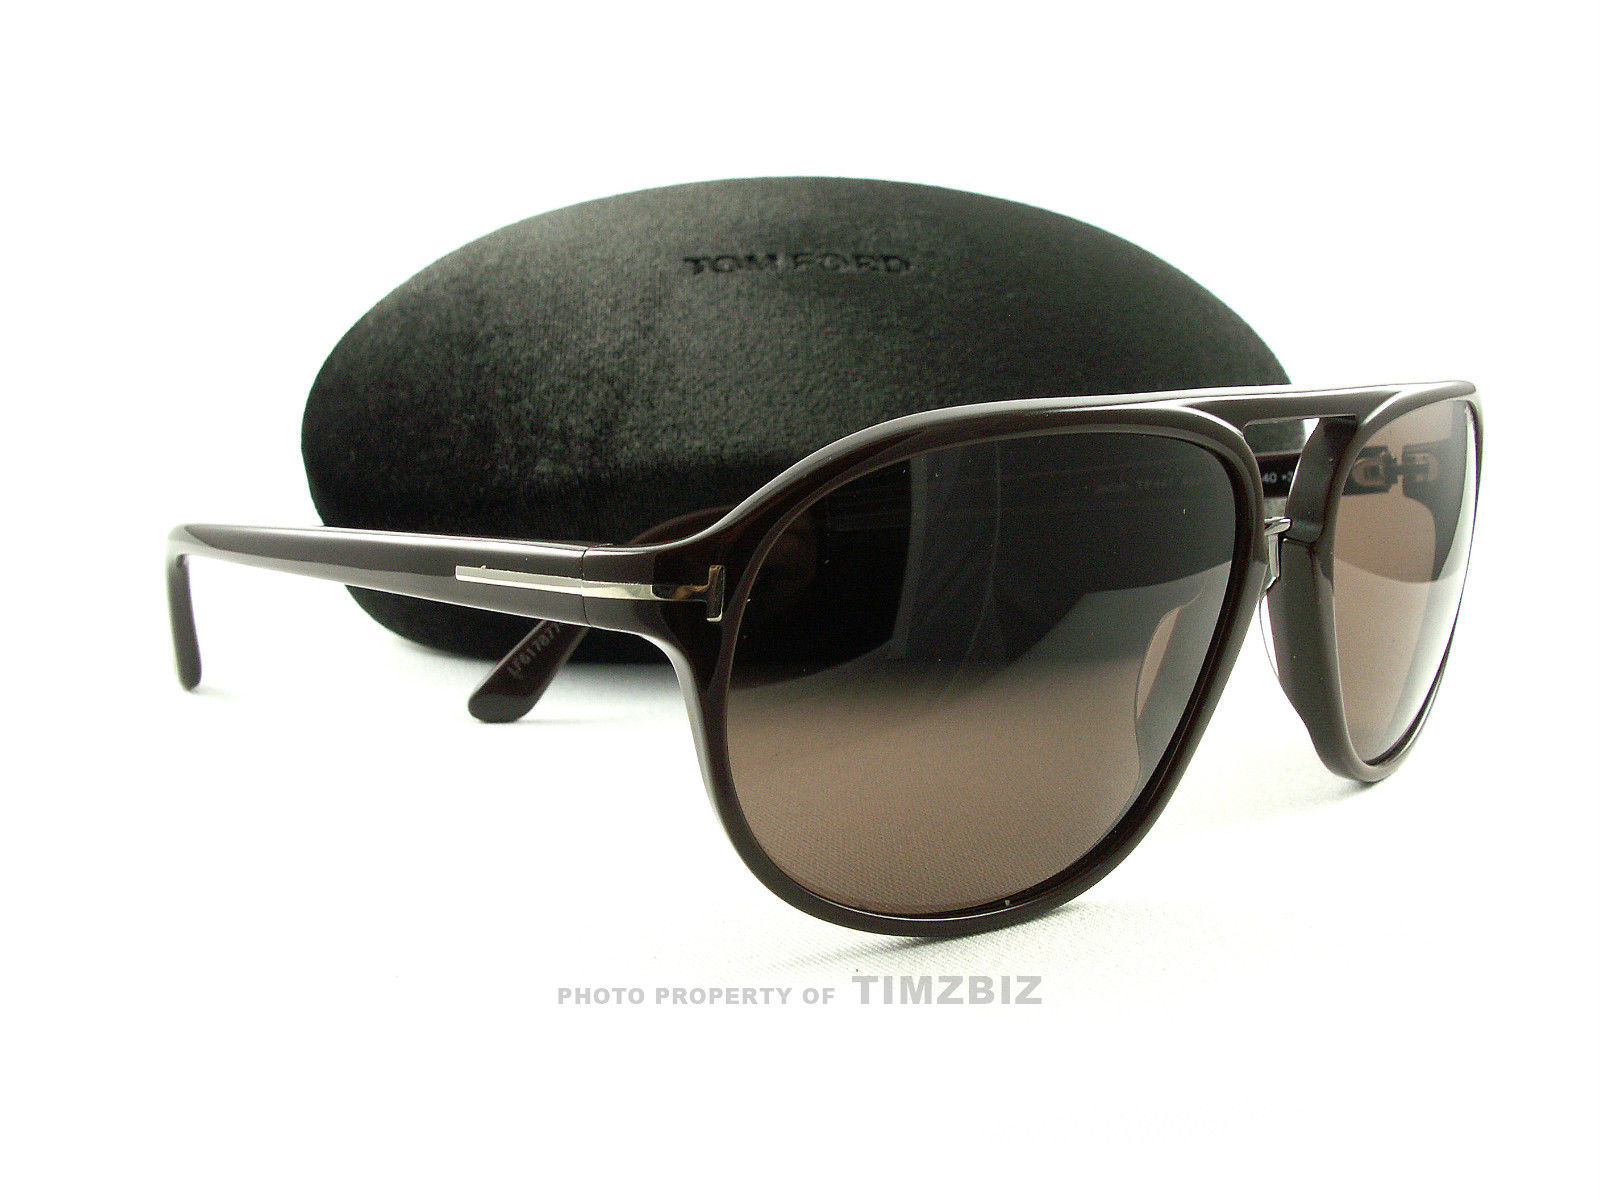 a5376c5cd6 New Tom Ford Sunglasses TF447 Jacob 49J and 30 similar items